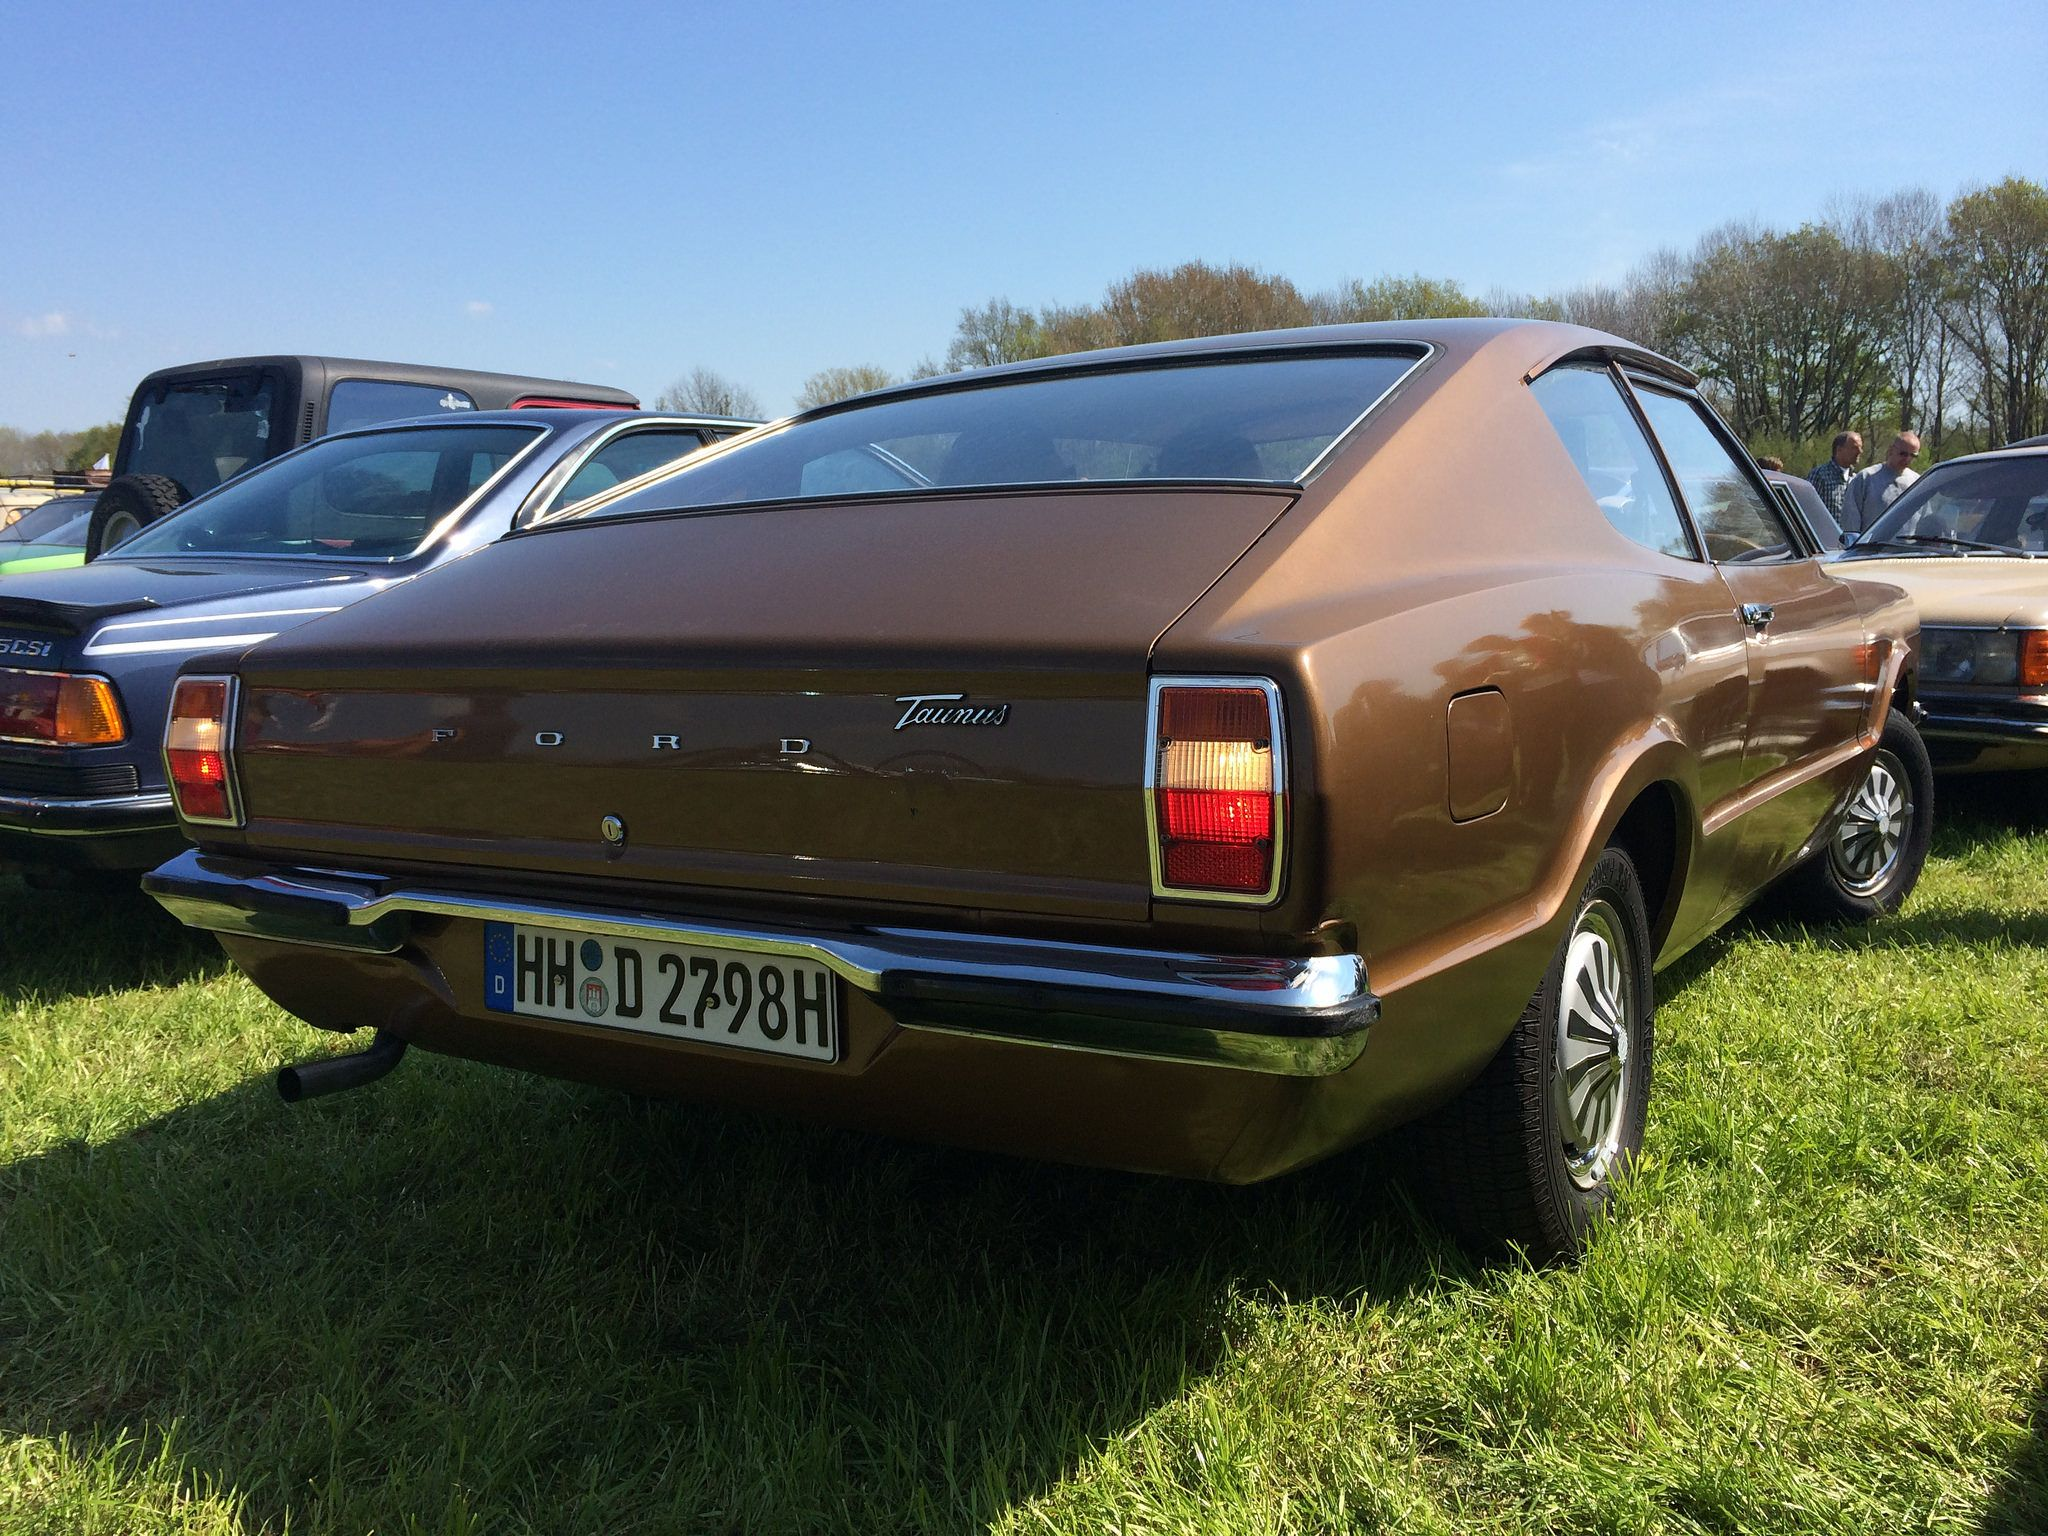 Ford Taunus Coupe Ford Classic Cars Classic Cars Bmw Series